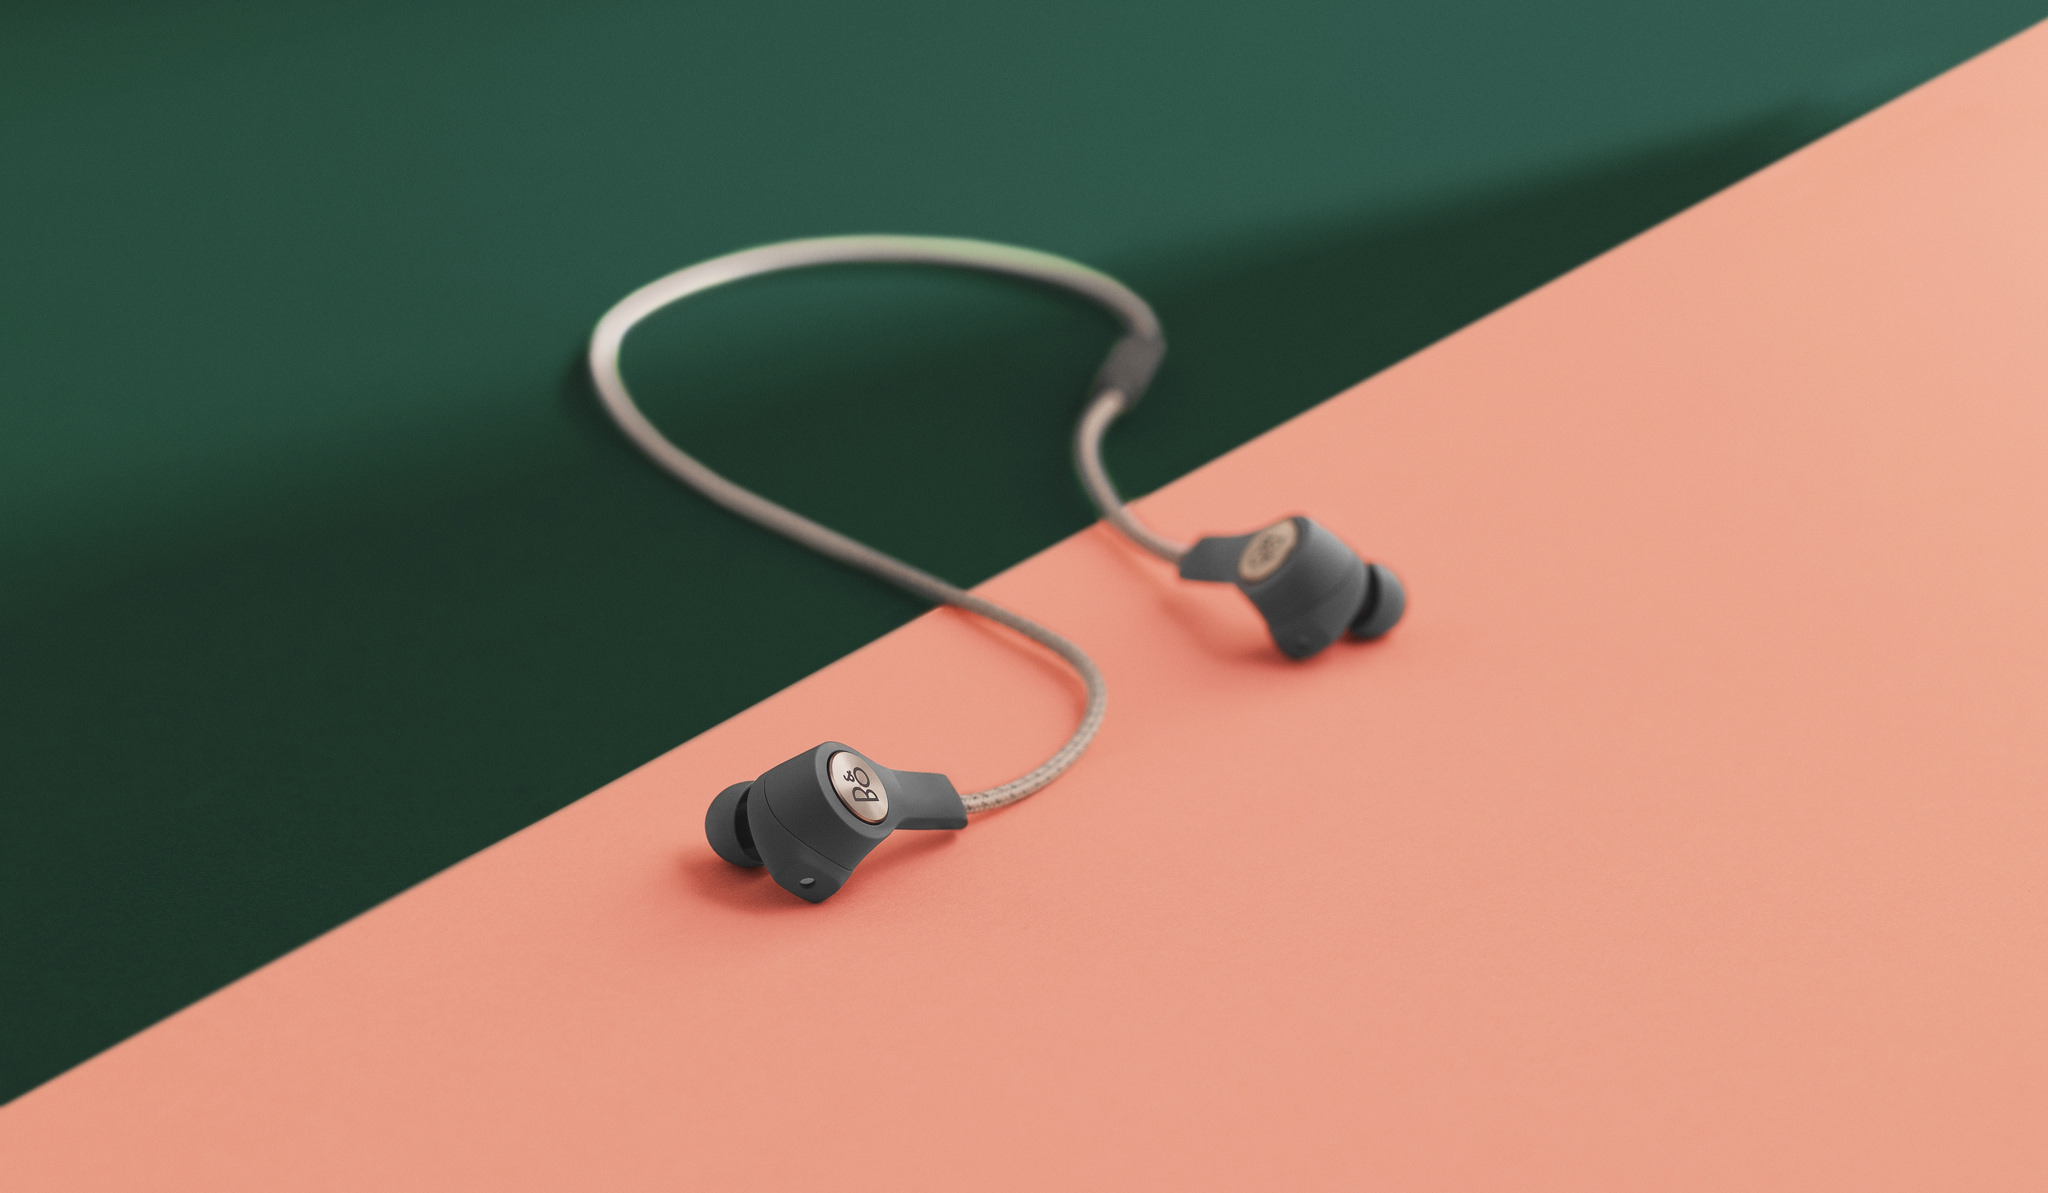 b&o beoplay h5 in ear wireless headphones review